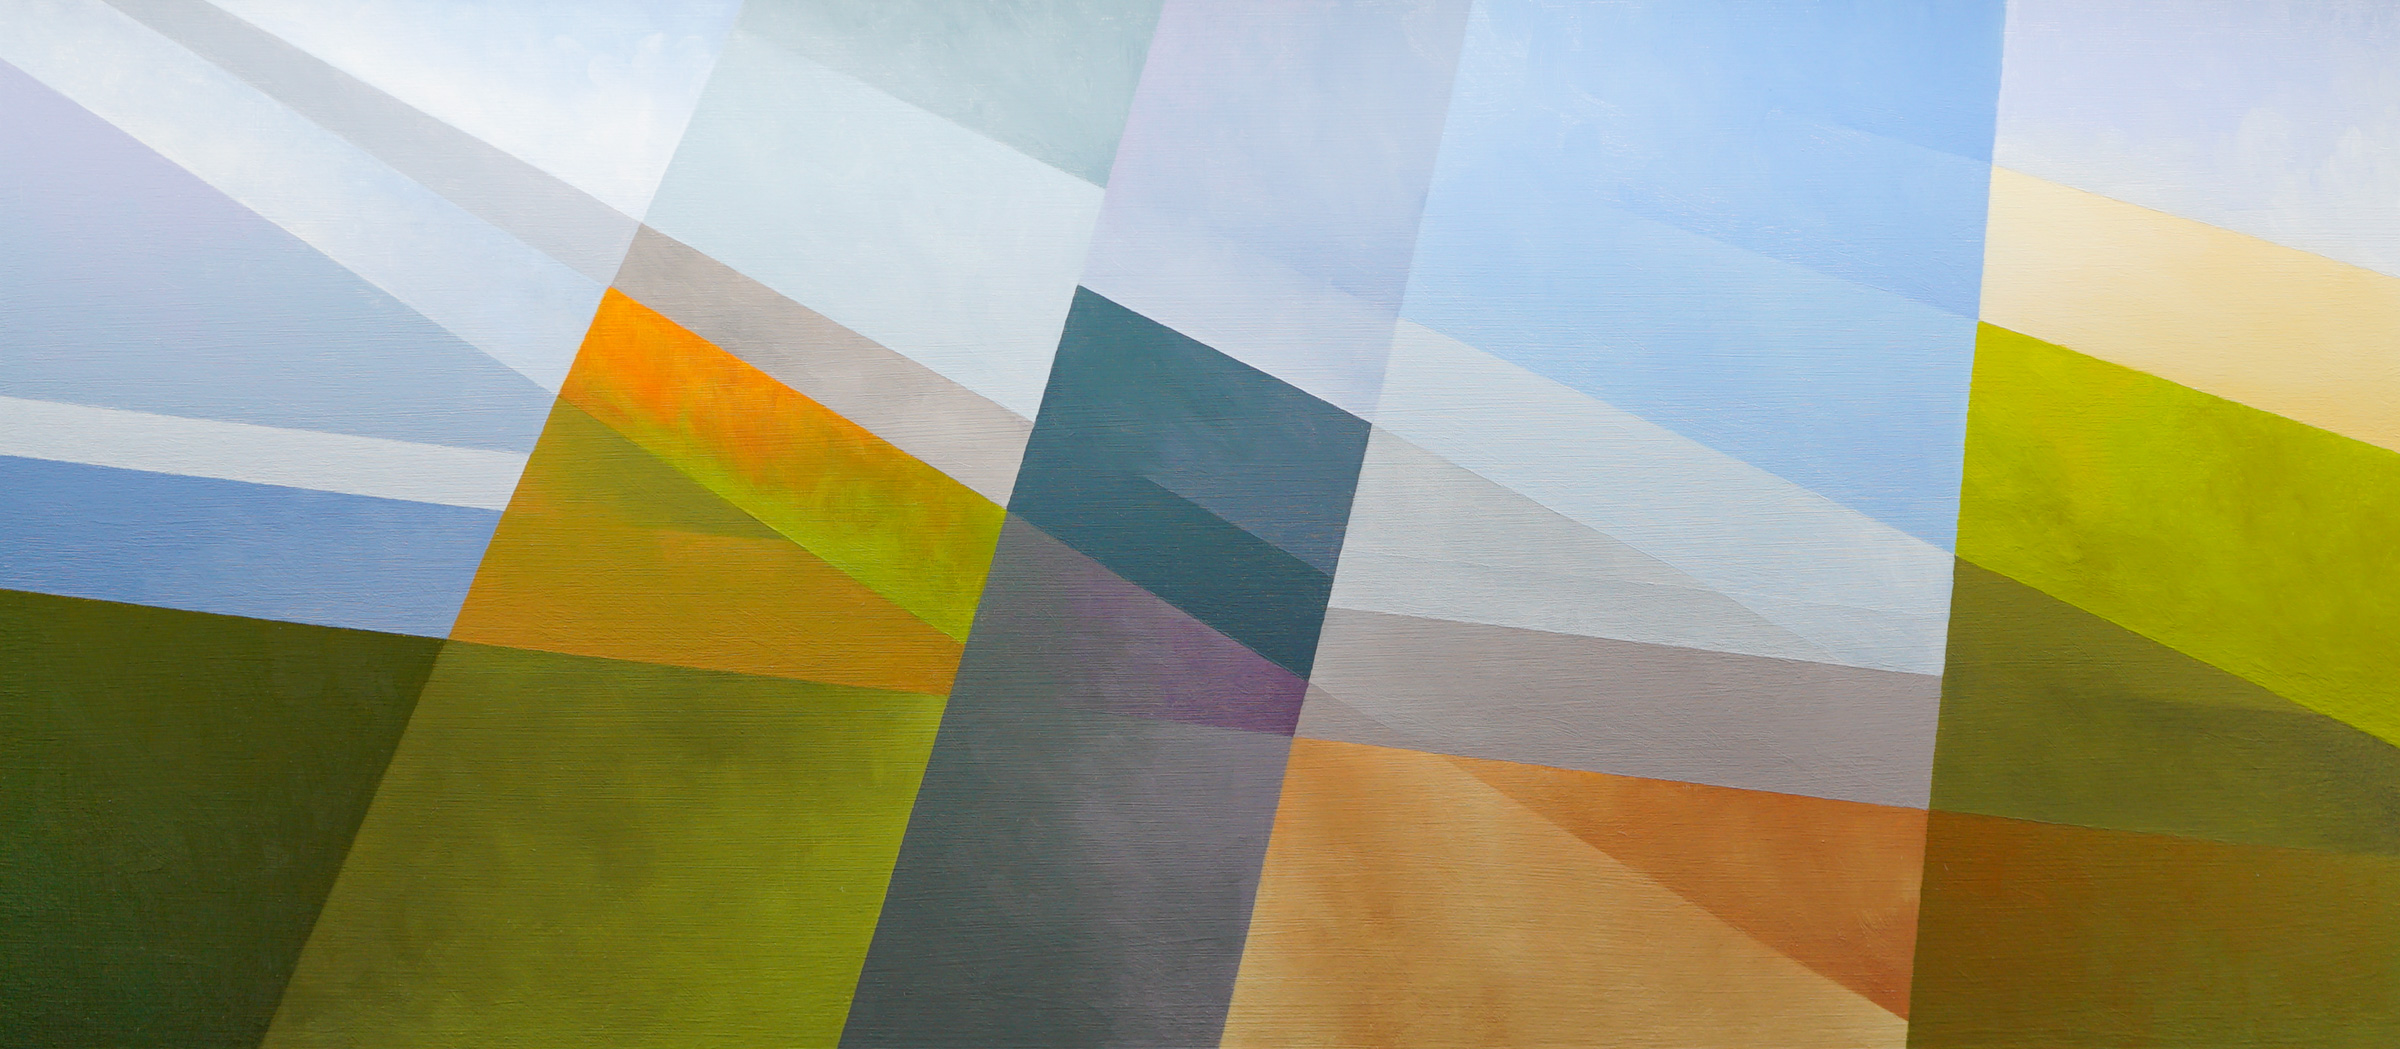 Geometric abstract landscape with blue, green, and orange